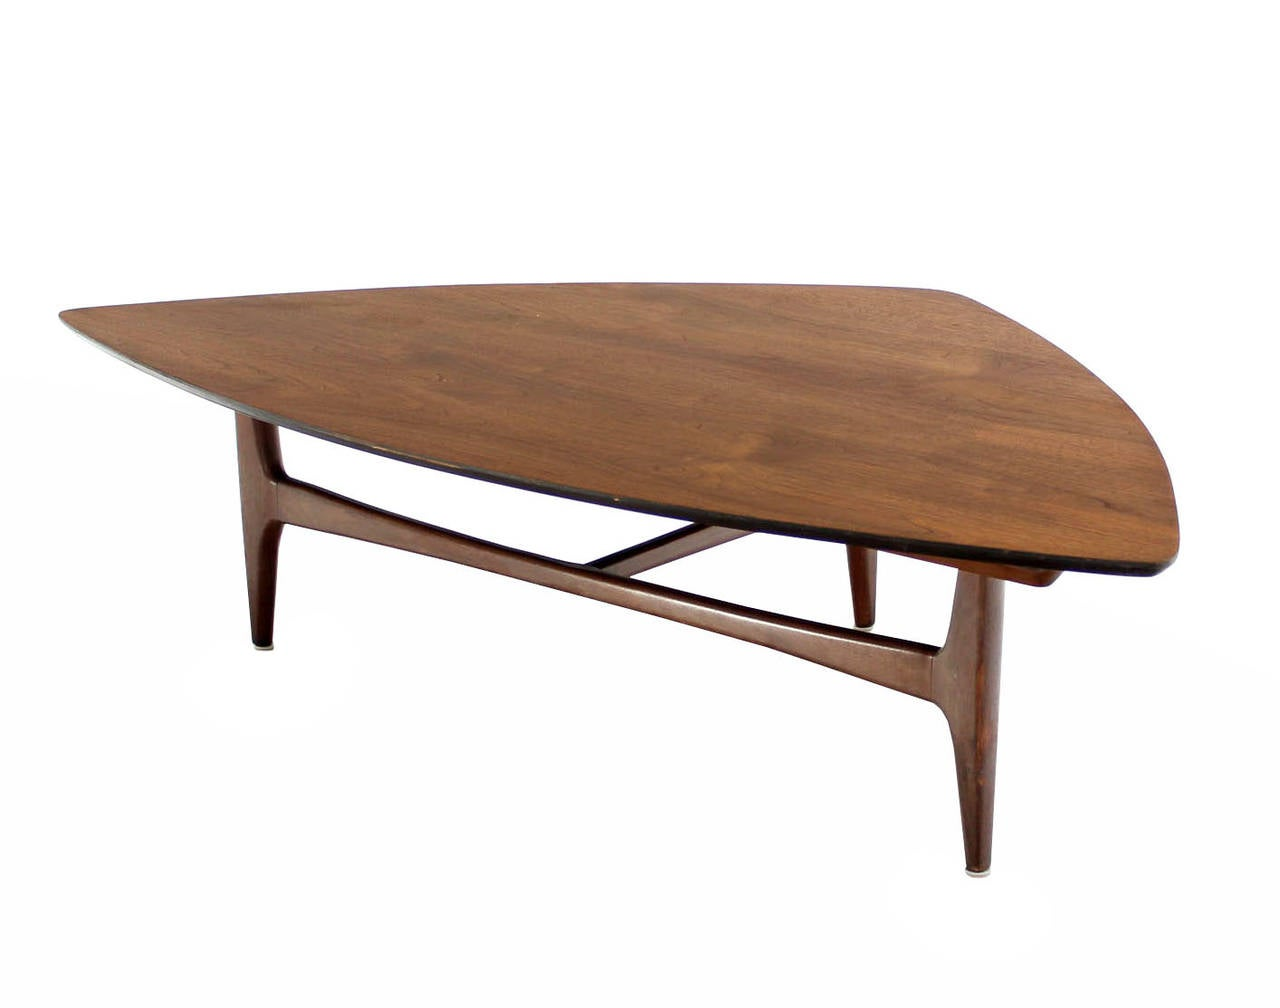 Triangle Shaped Coffee Table Awesome Living Room Italian Bedroom Furniture Wooden Tier Glass